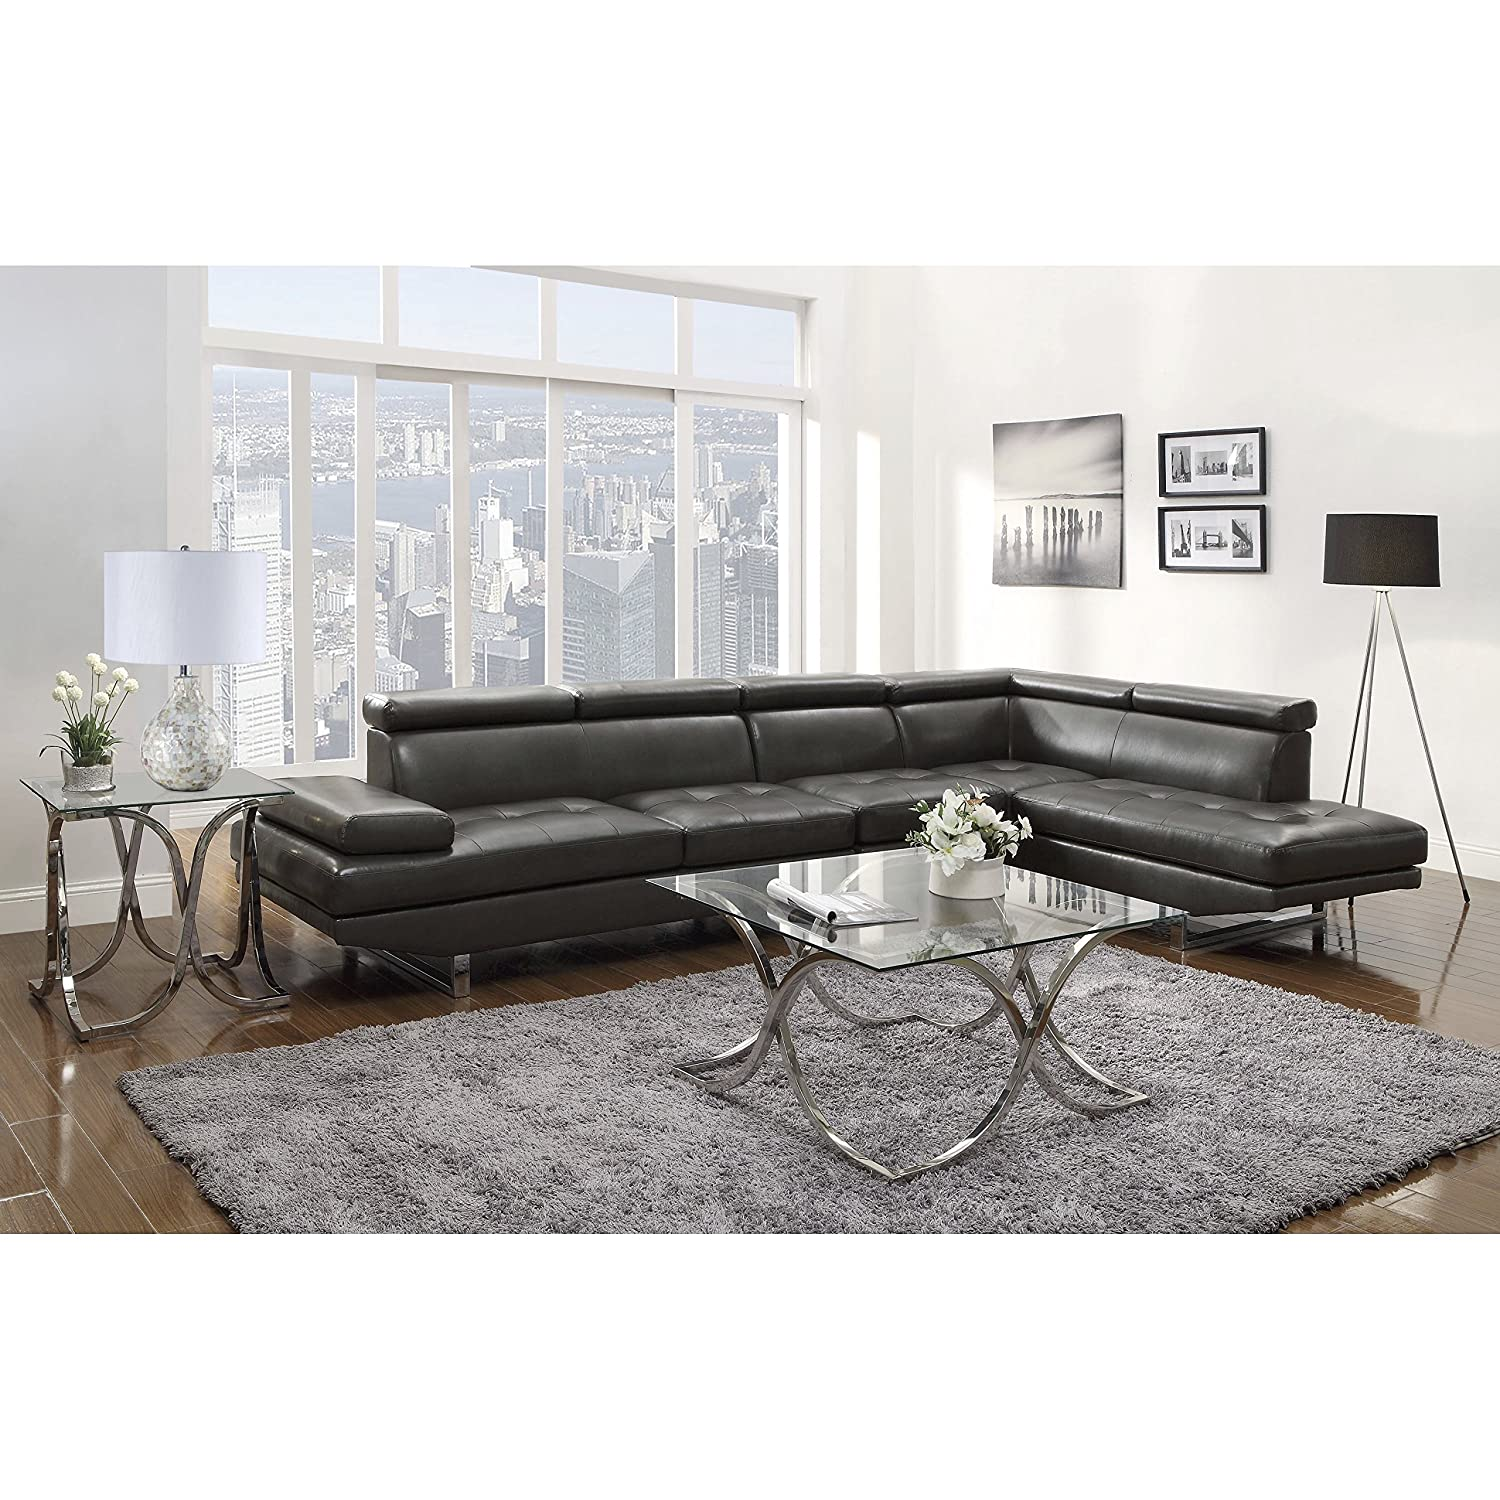 Amazon Coaster Home Furnishings Contemporary Sectional